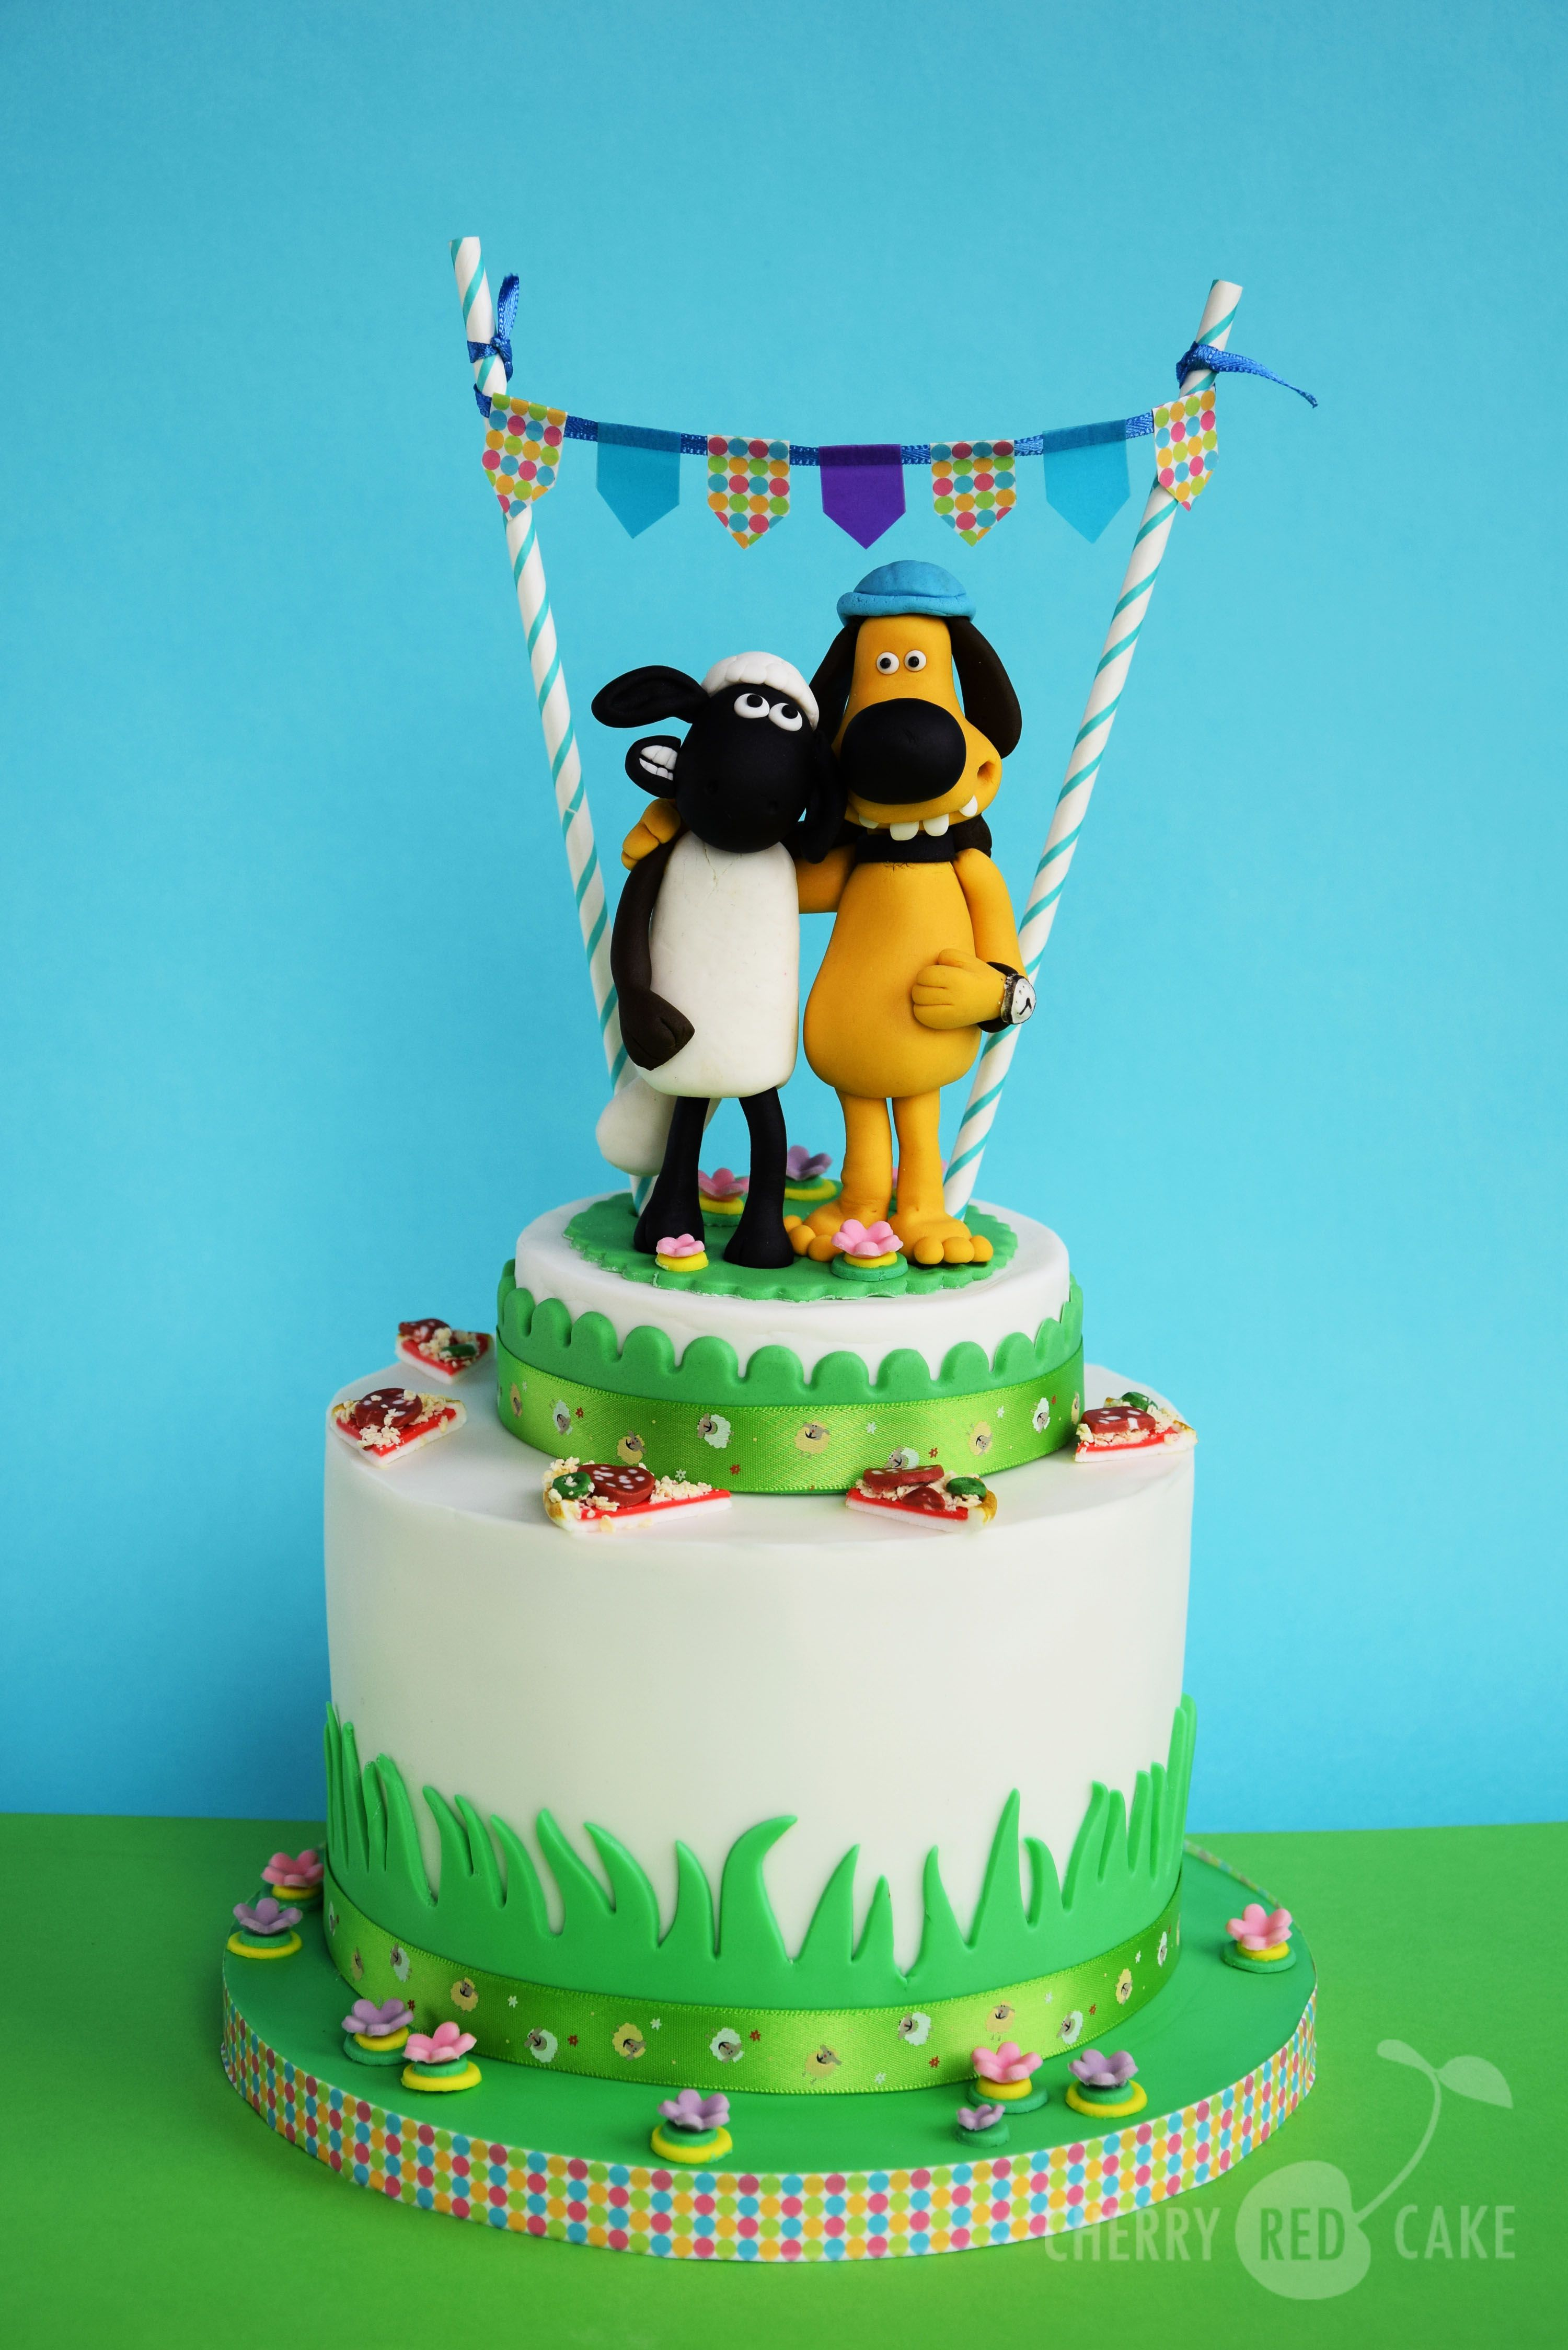 Shaun the sheep cake Cherry Red Cake Pinterest – Shaun the Sheep Birthday Card